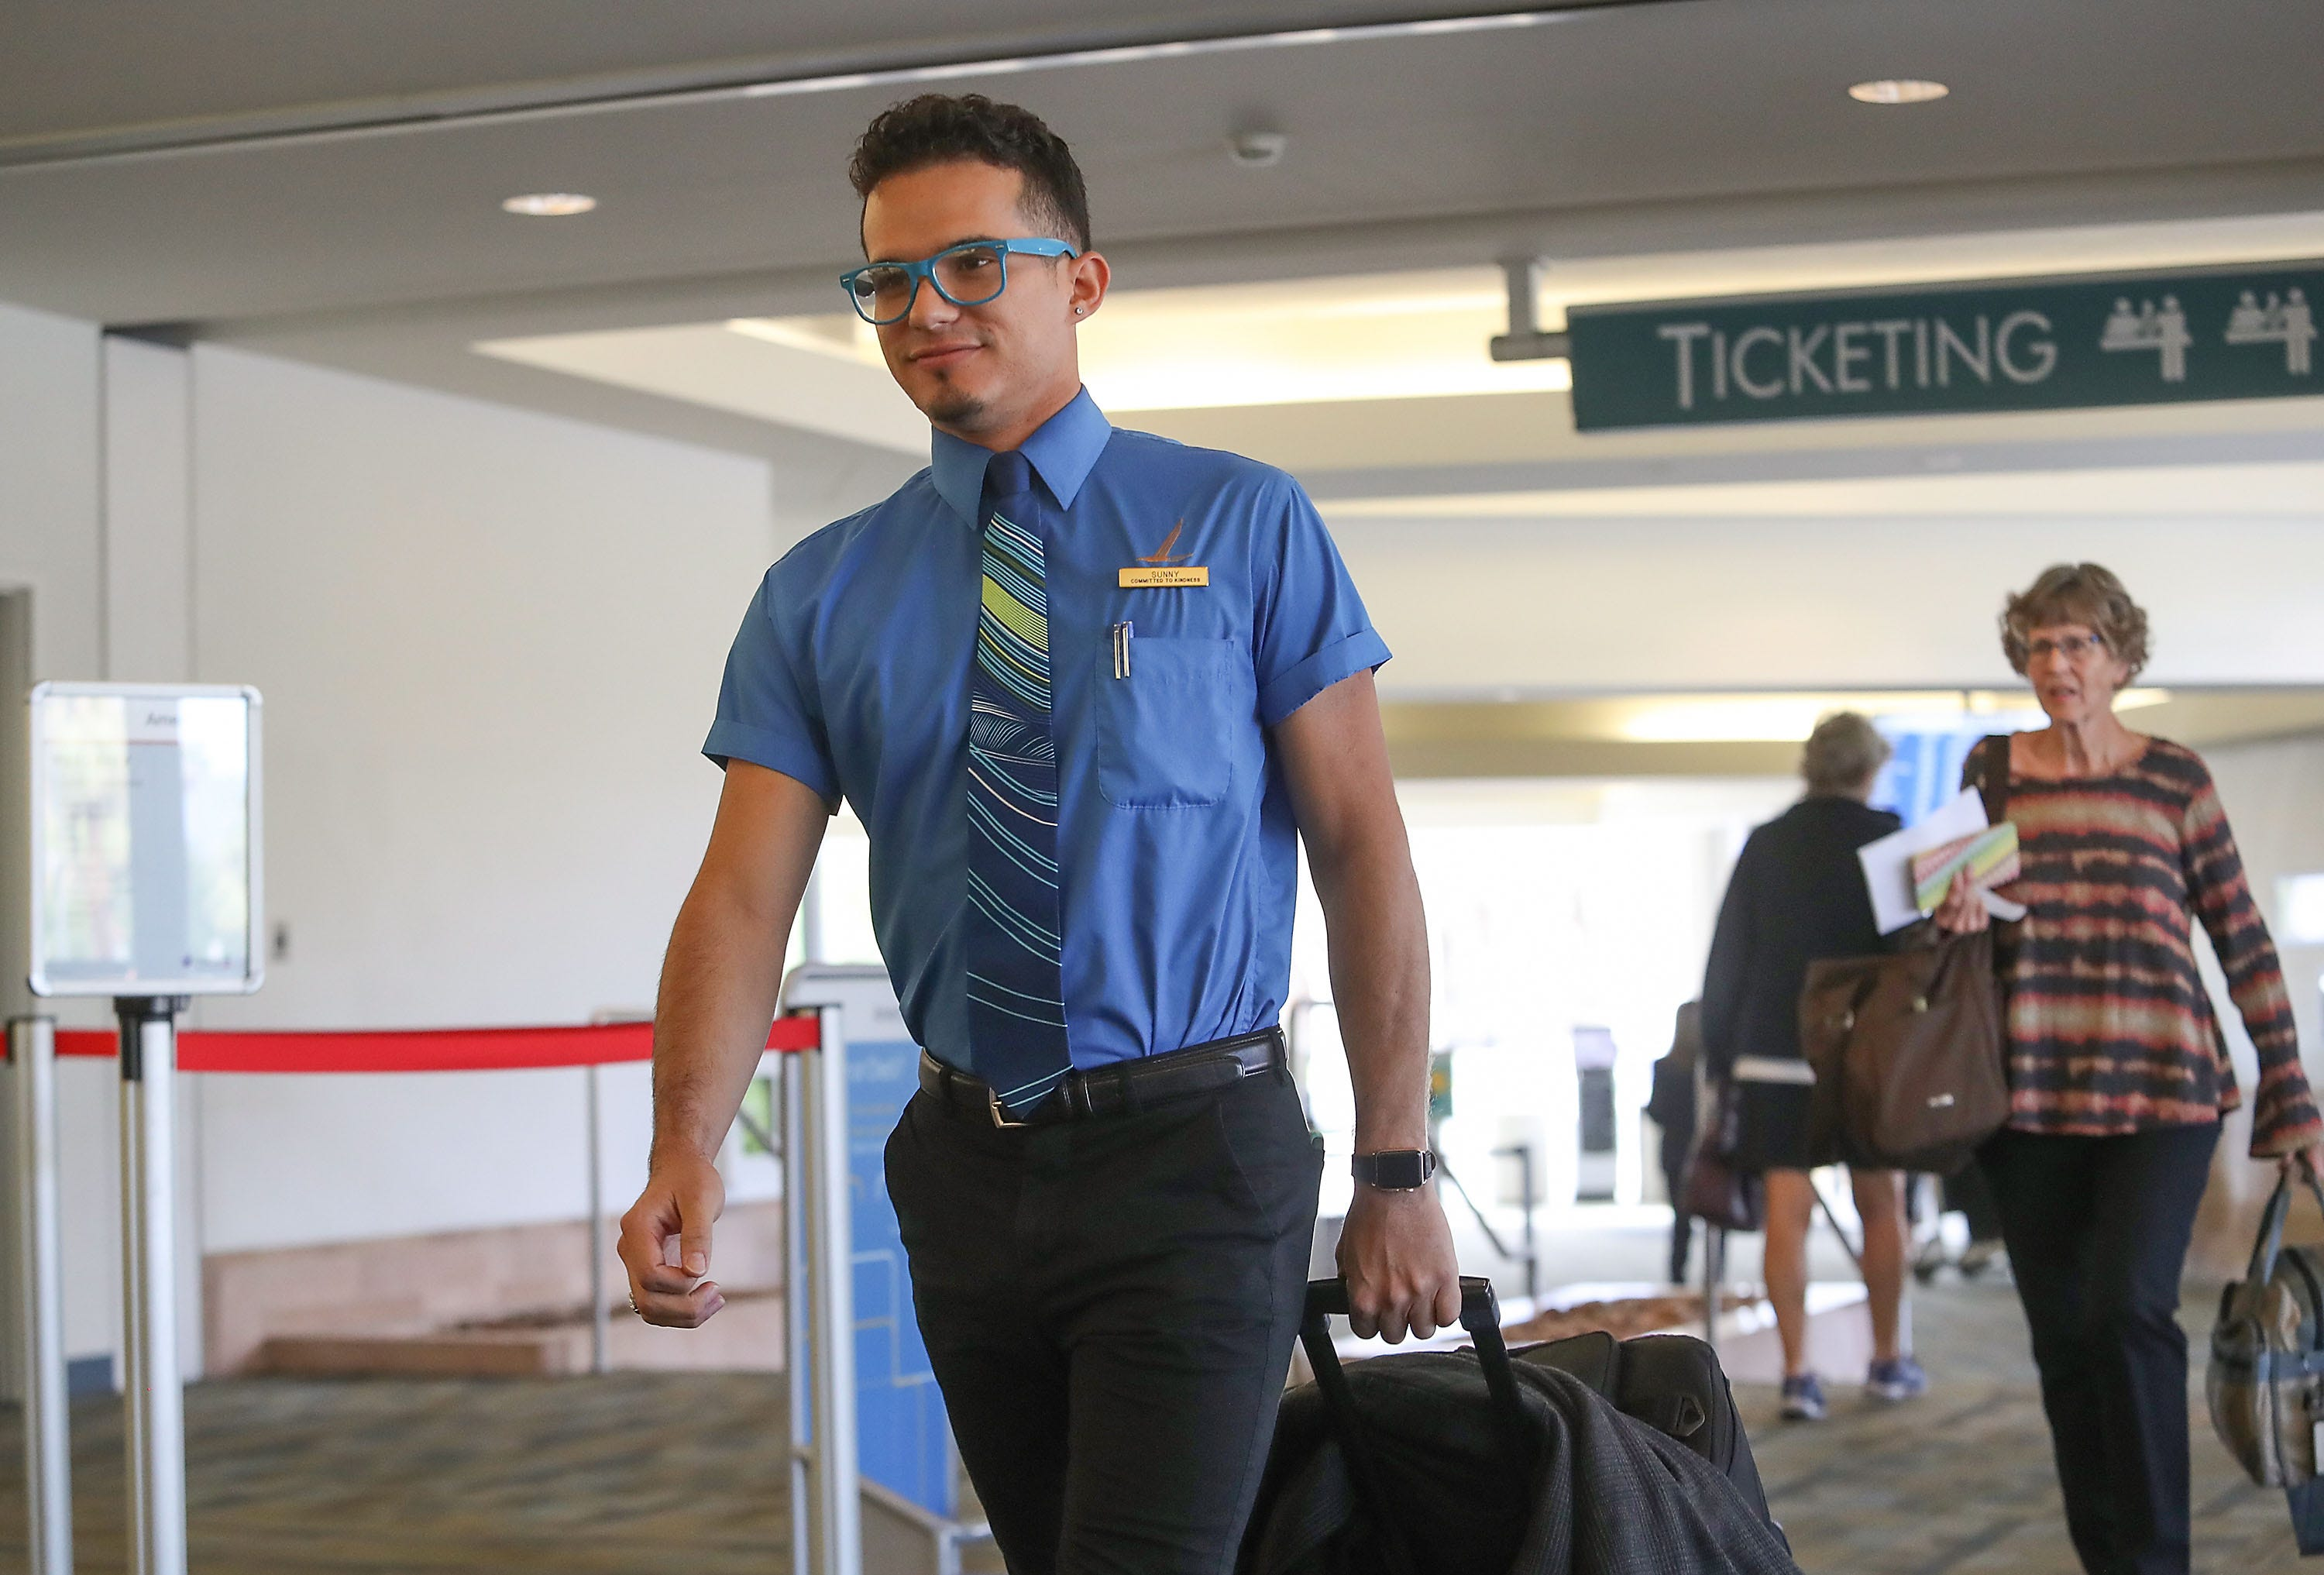 Sammy Vargas, a flight attendant with Alaska Airlines walks through the Palm Springs International Airport, November 16, 2018.